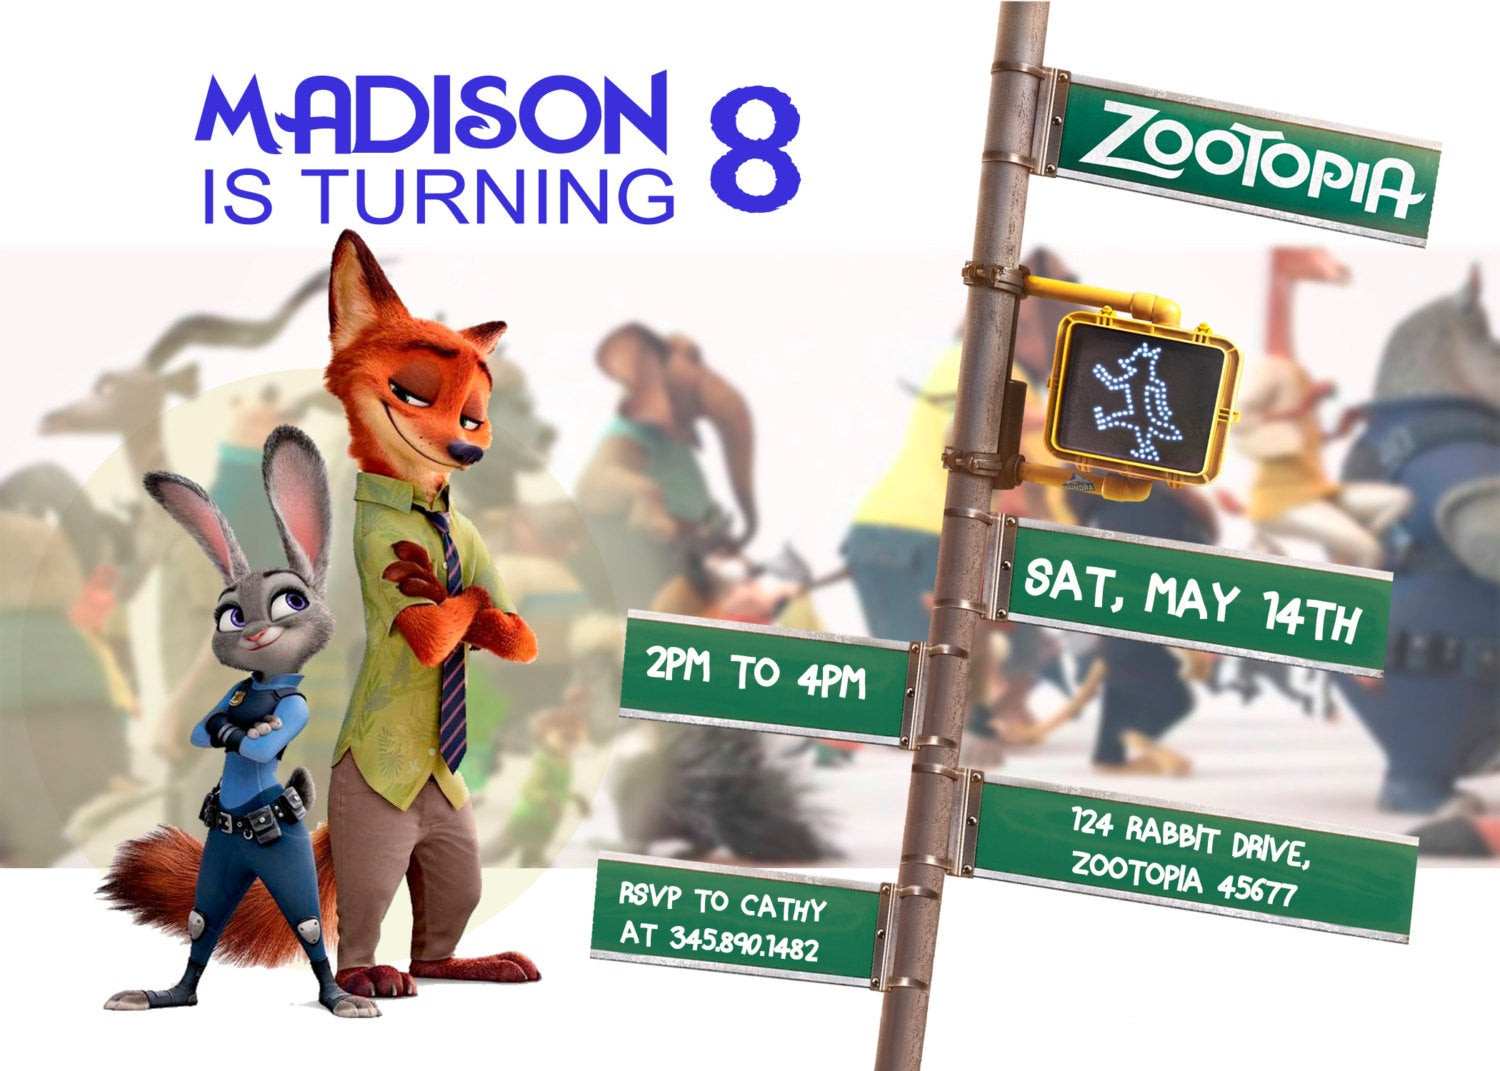 Best ideas about Zootopia Birthday Invitations . Save or Pin Zootopia Invitation Birthday Disney Invite customized Now.